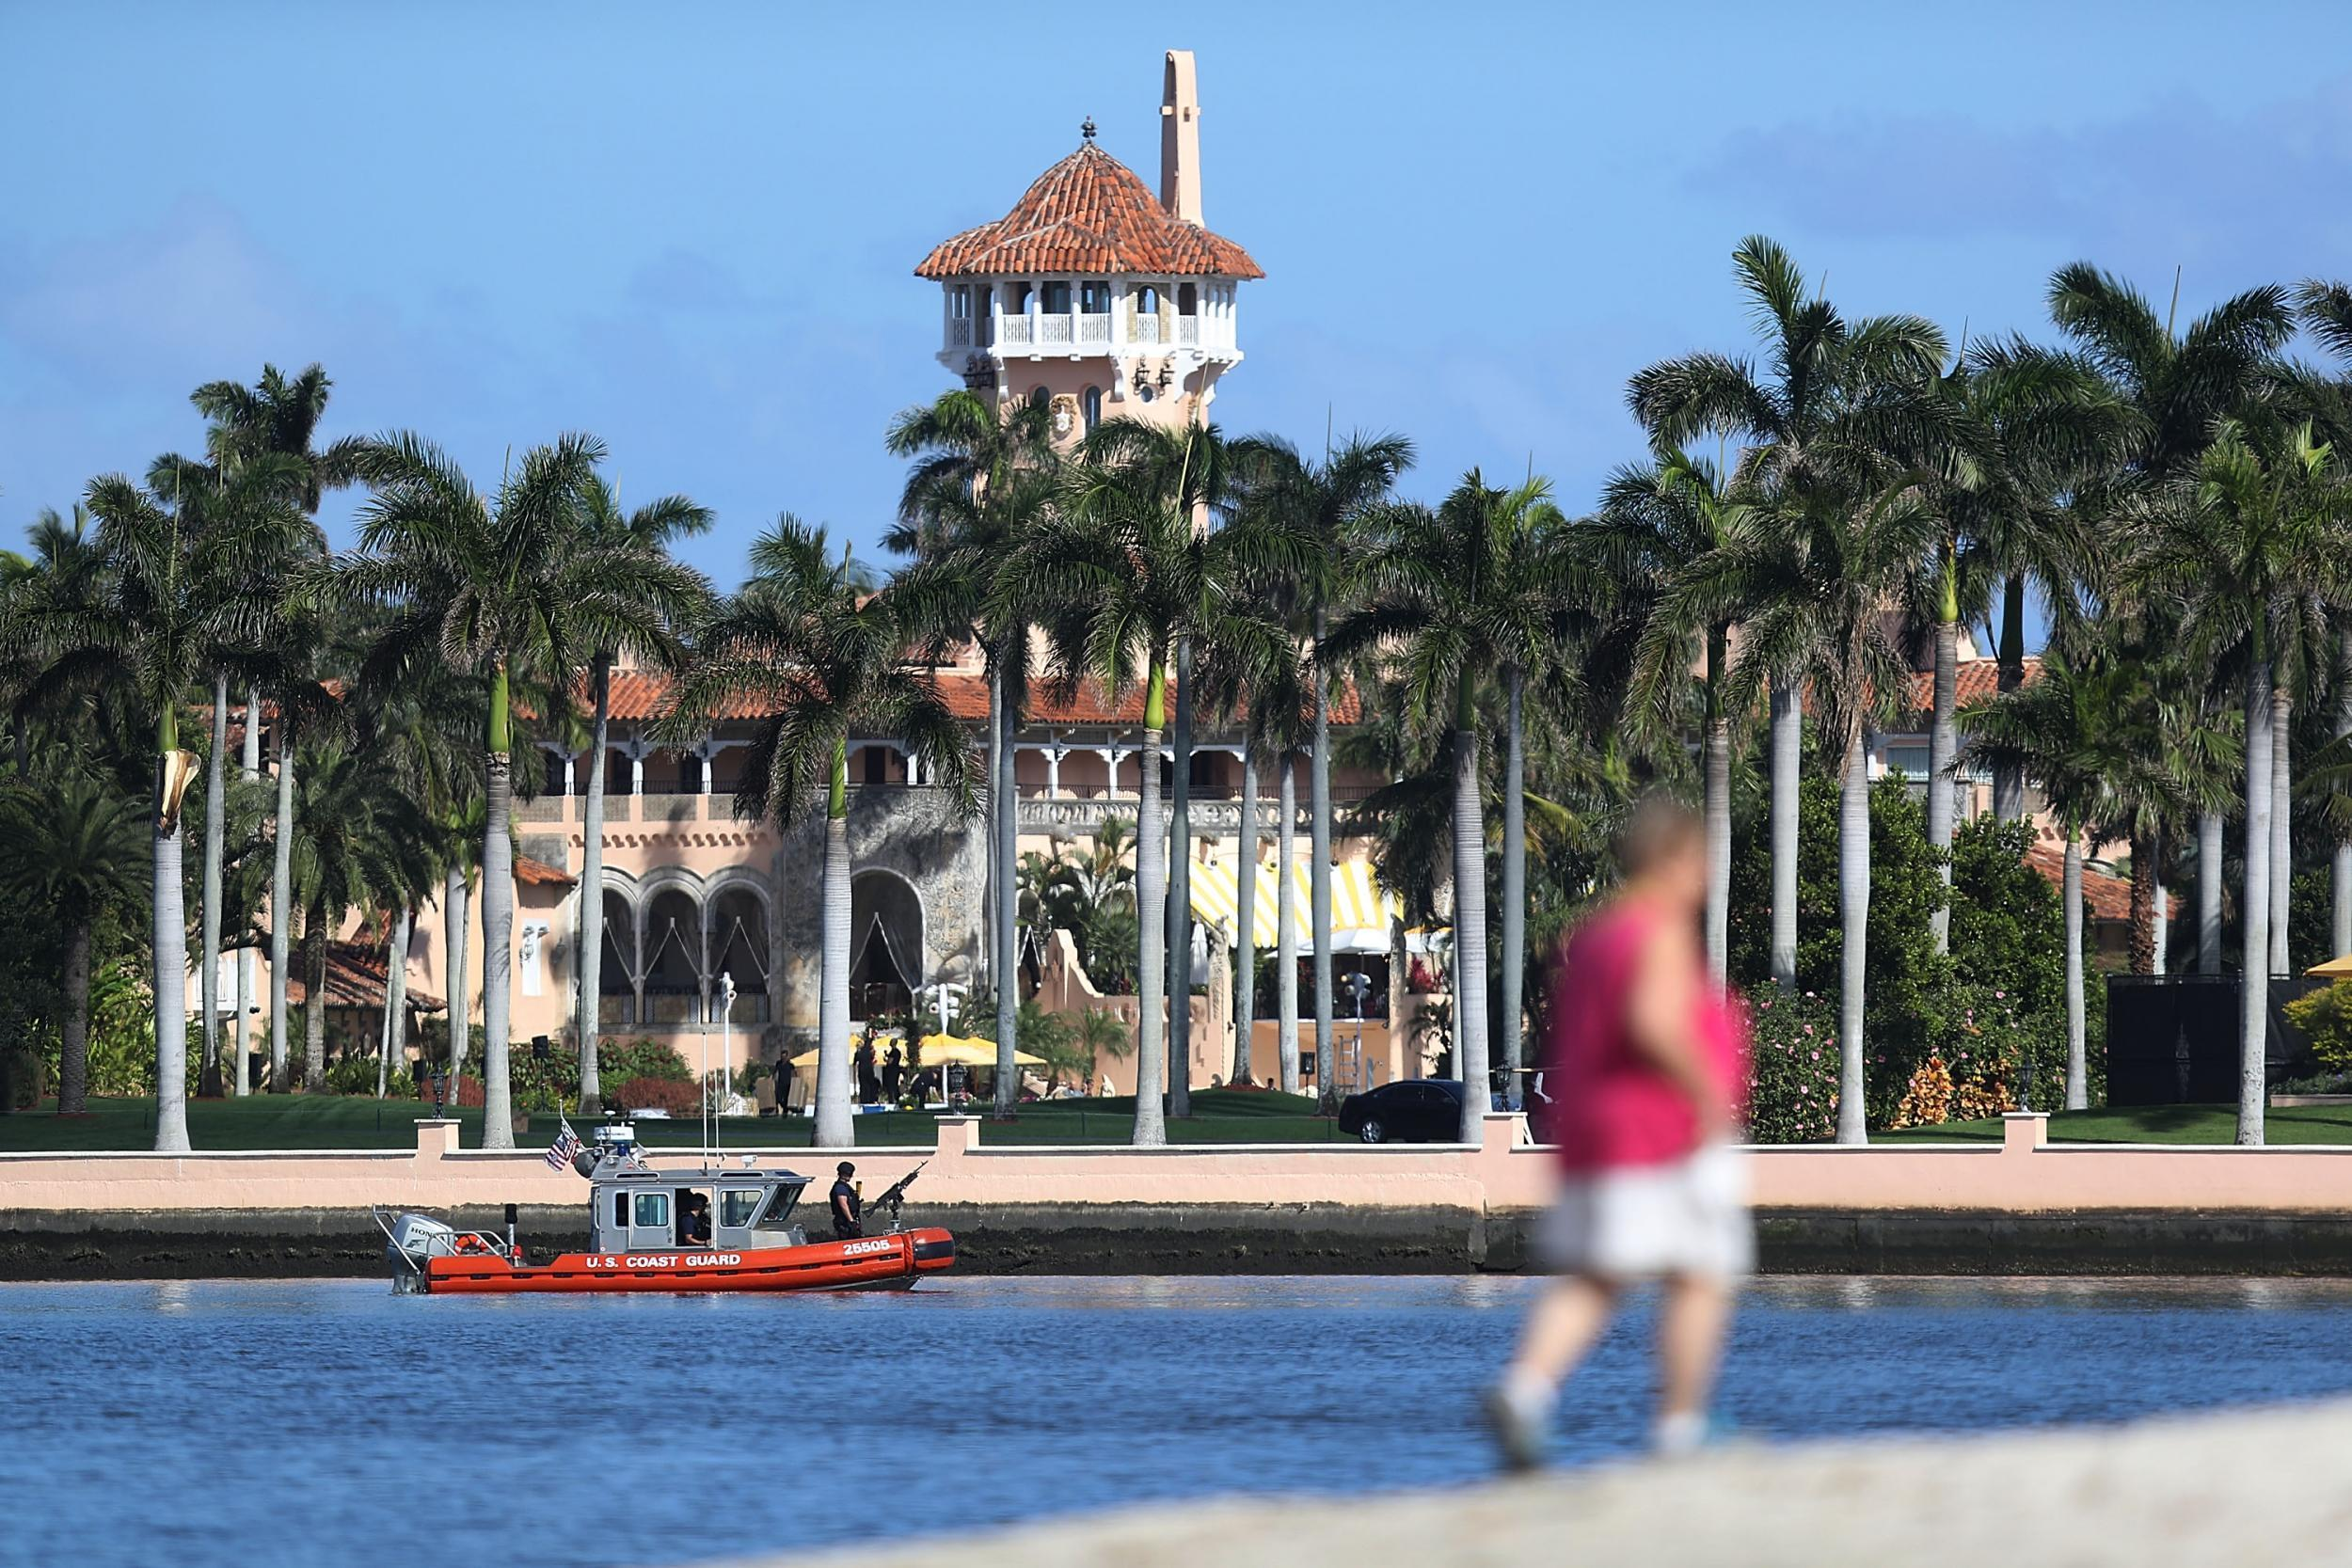 Donald Trump's Mar-a-Lago wifi wide open to 'any half-decent hacker'